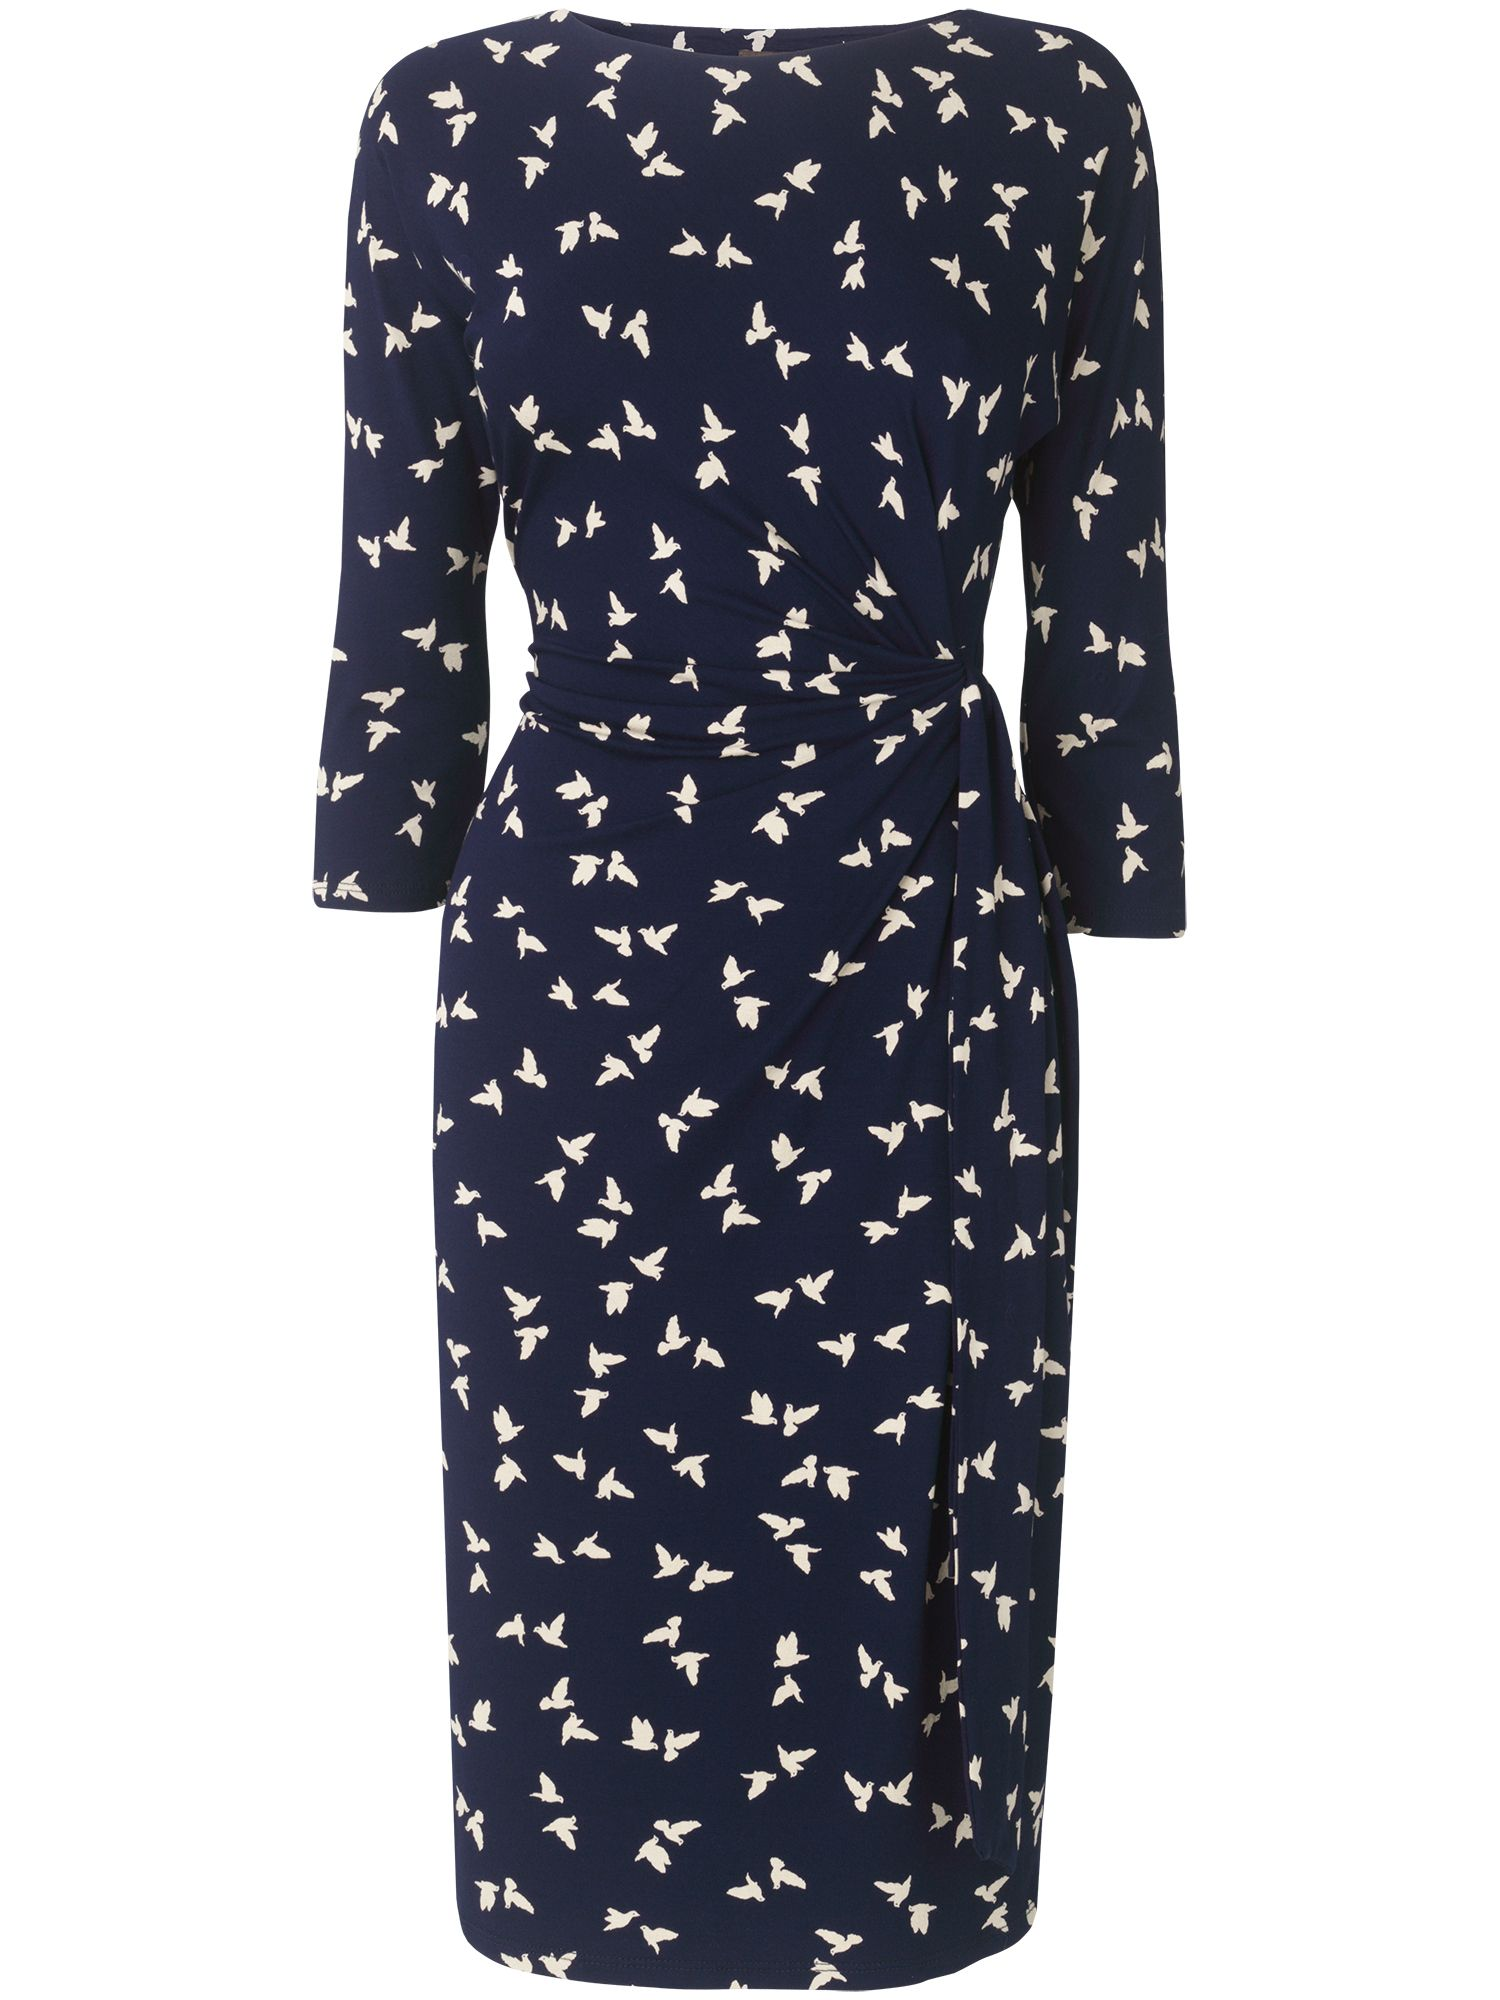 Kissing birds print dress